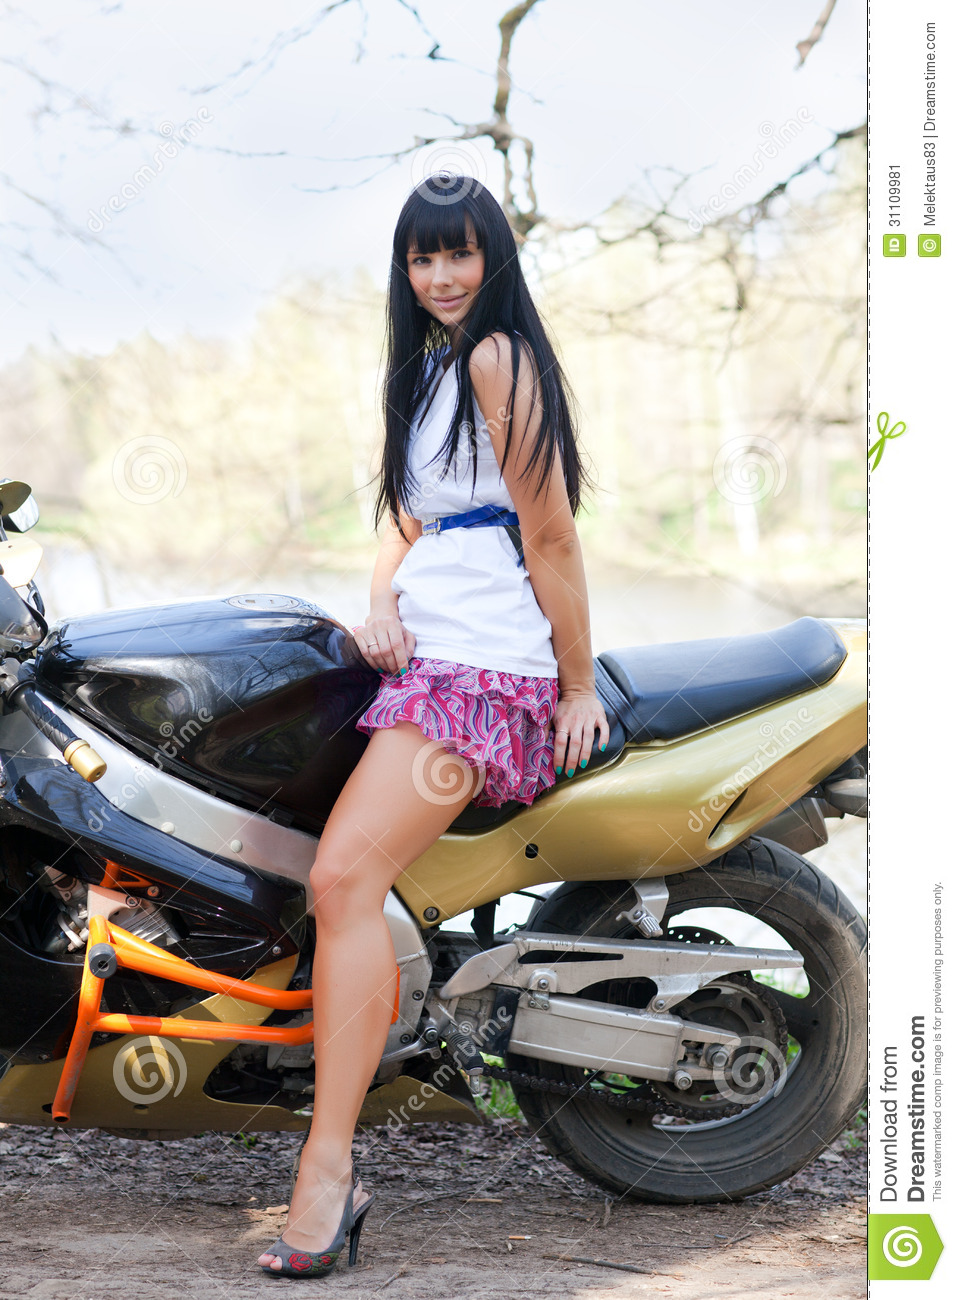 Sportbike Riding Boots >> Biker Girl On A Motorcycle stock image. Image of lady ...